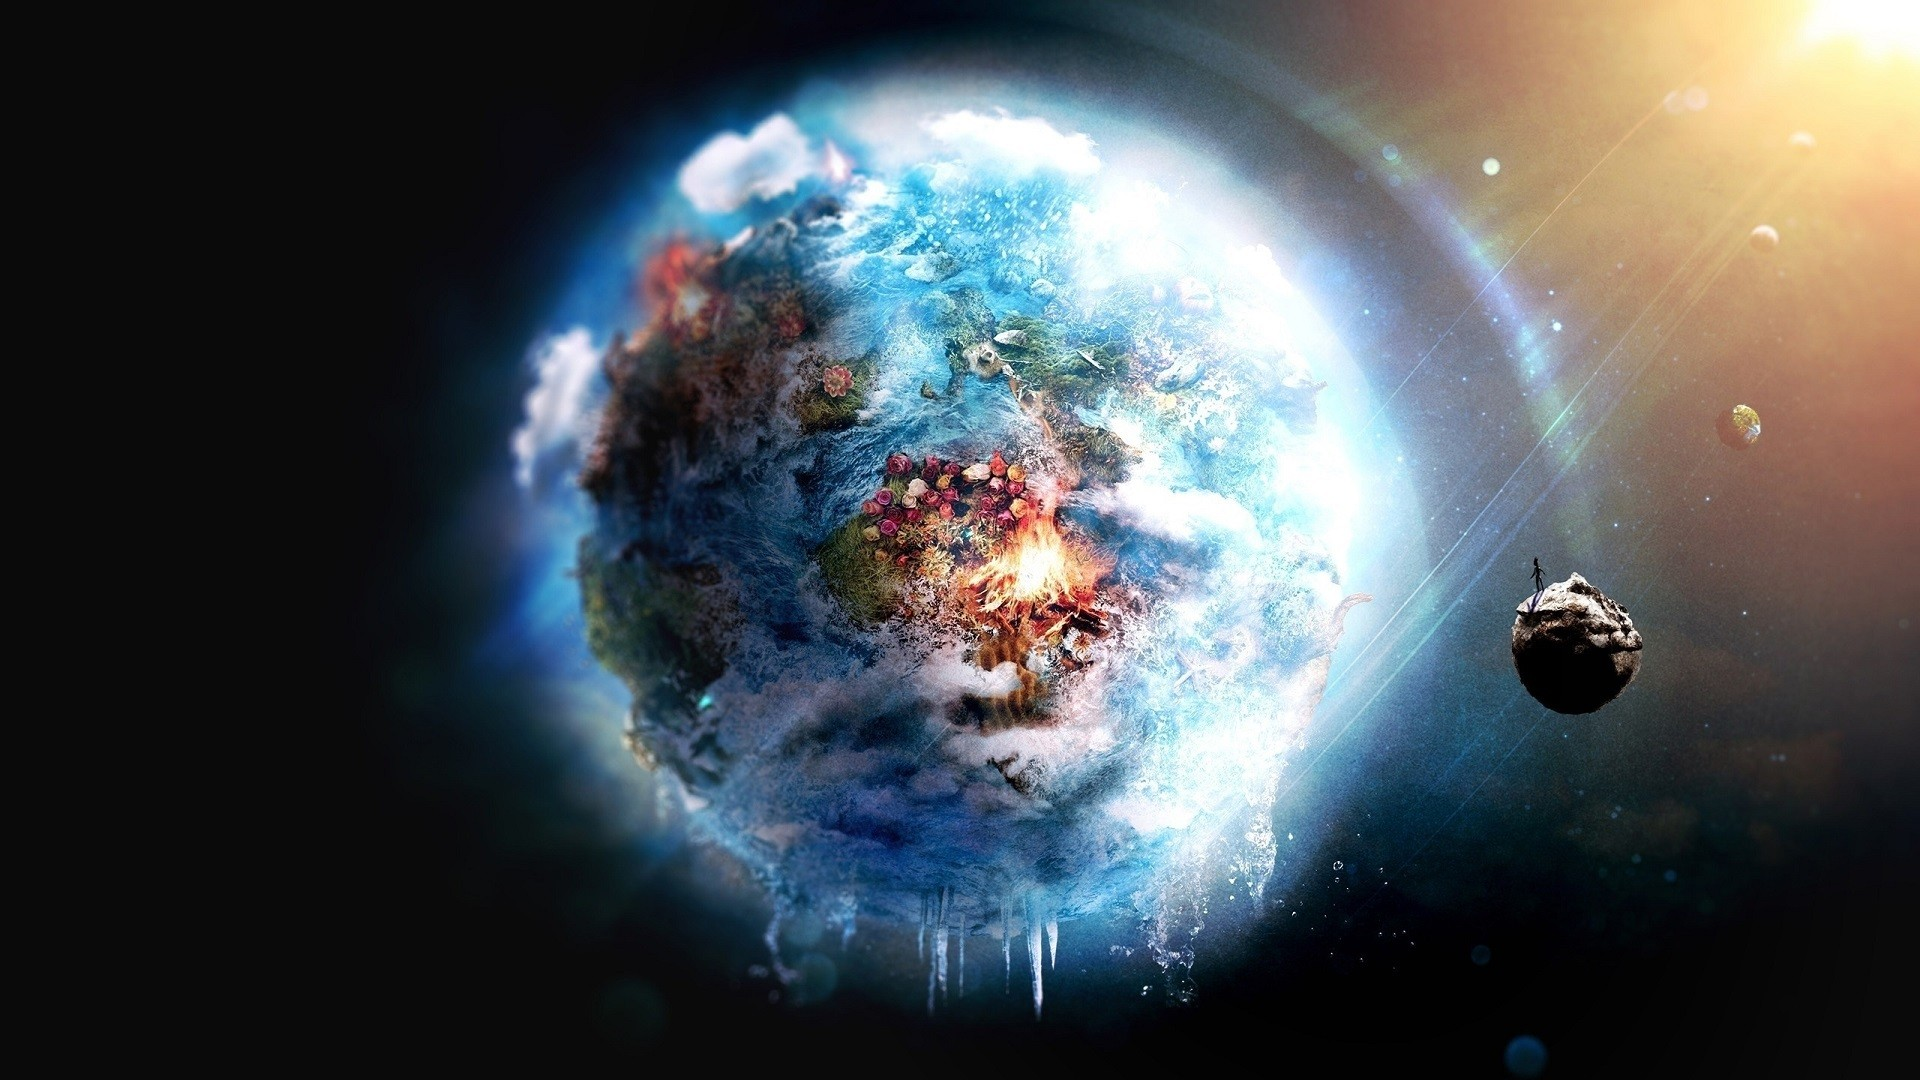 World Wallpaper Download Free Cool Backgrounds For